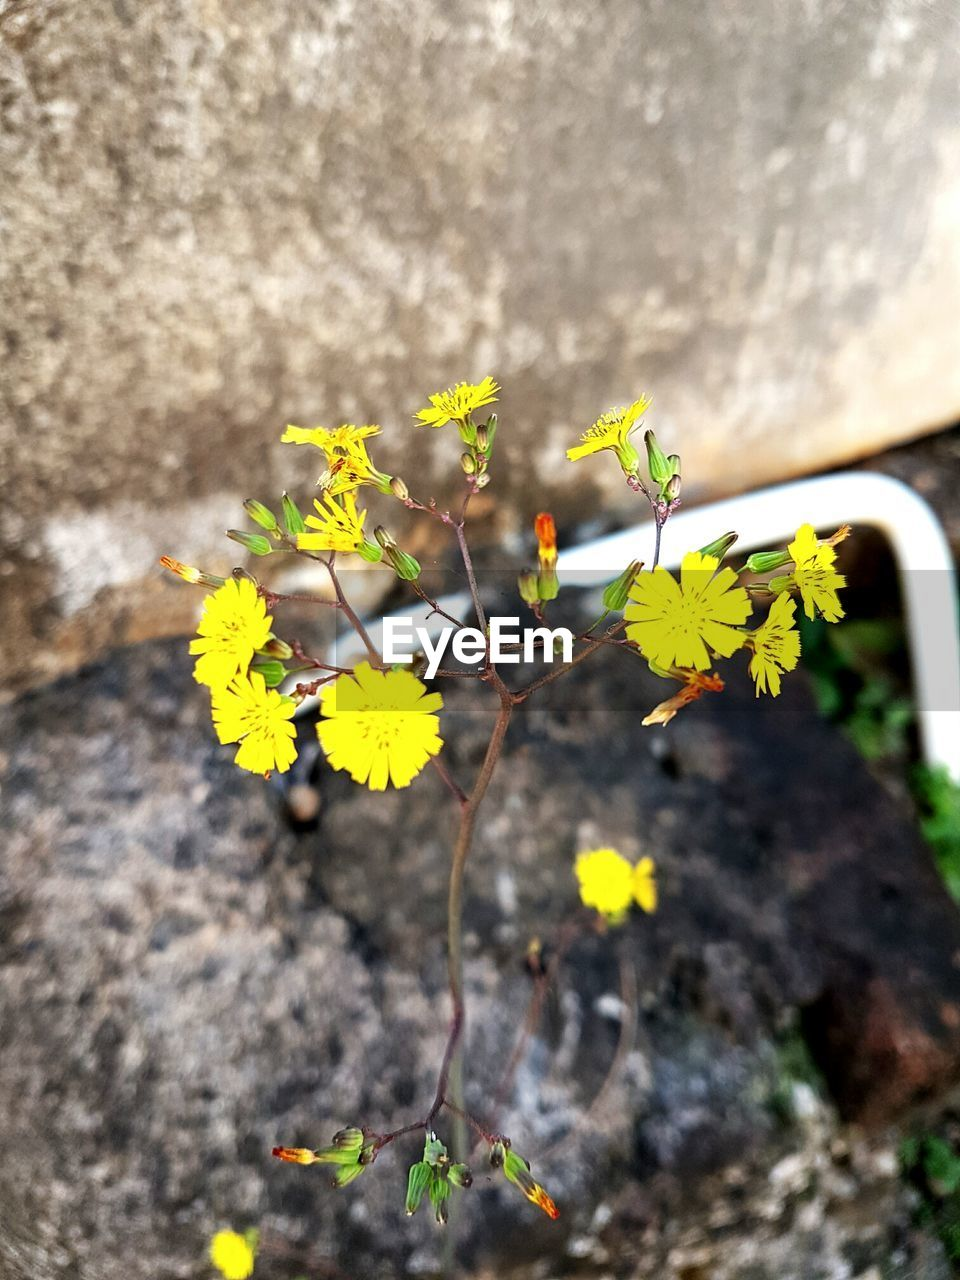 flower, growth, fragility, plant, nature, yellow, blossom, freshness, no people, outdoors, day, delicate, close-up, beauty in nature, flower head, blooming